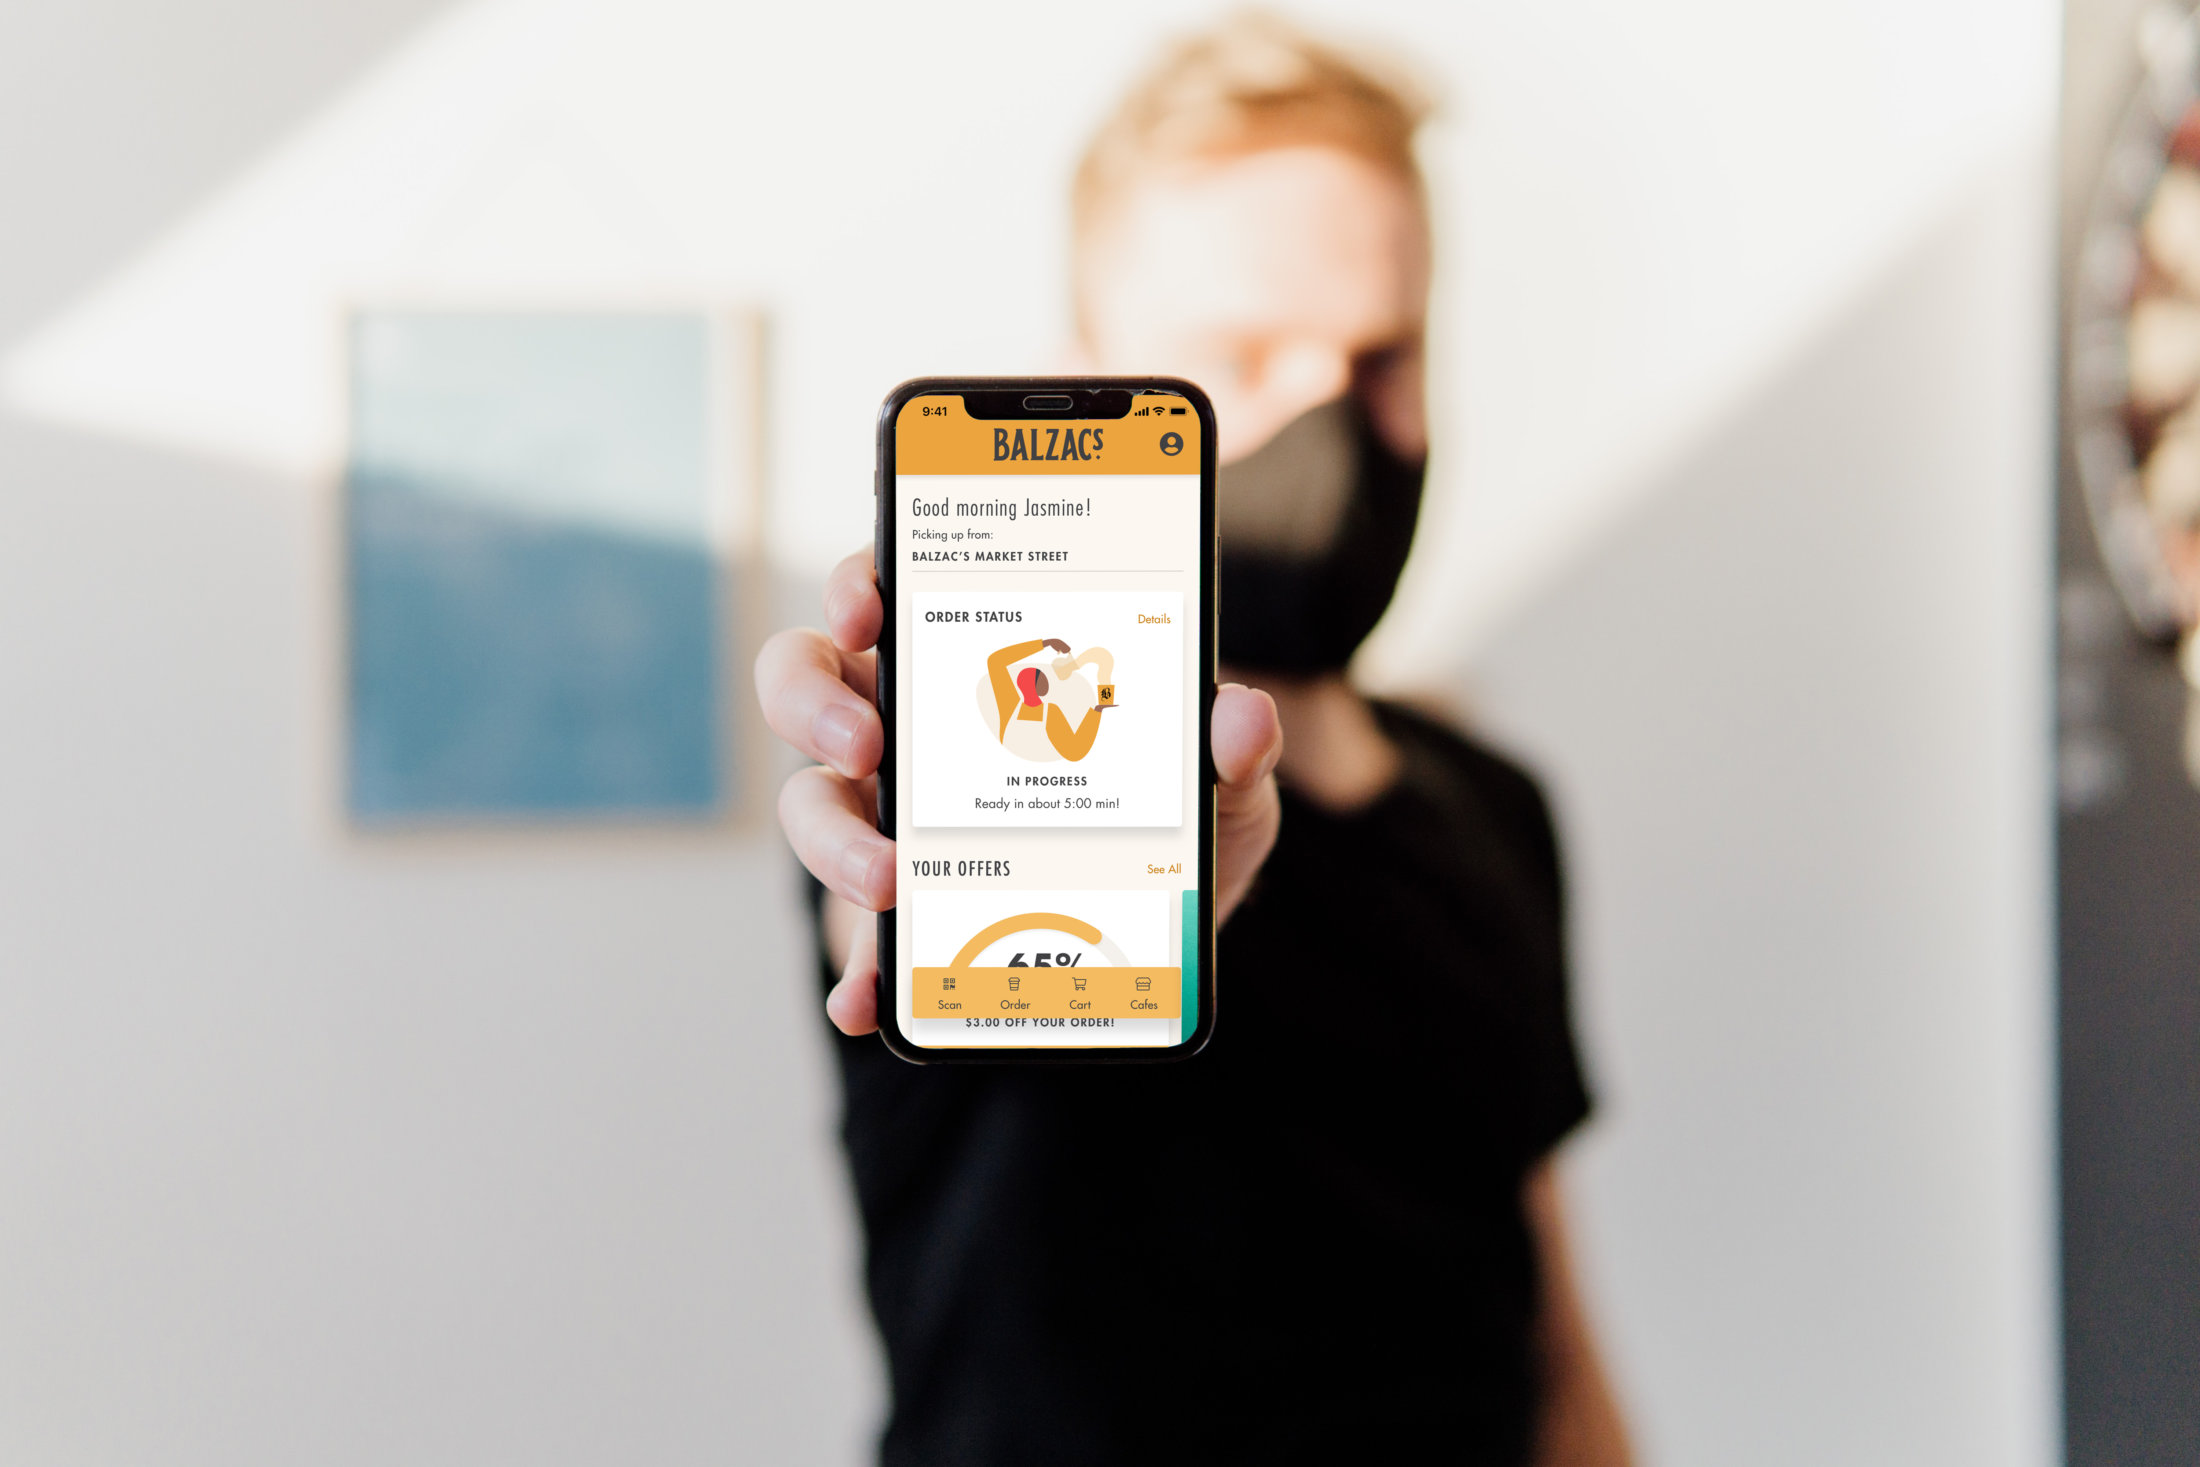 A person holding a phone that shows the Balzac's Coffee Roasters app